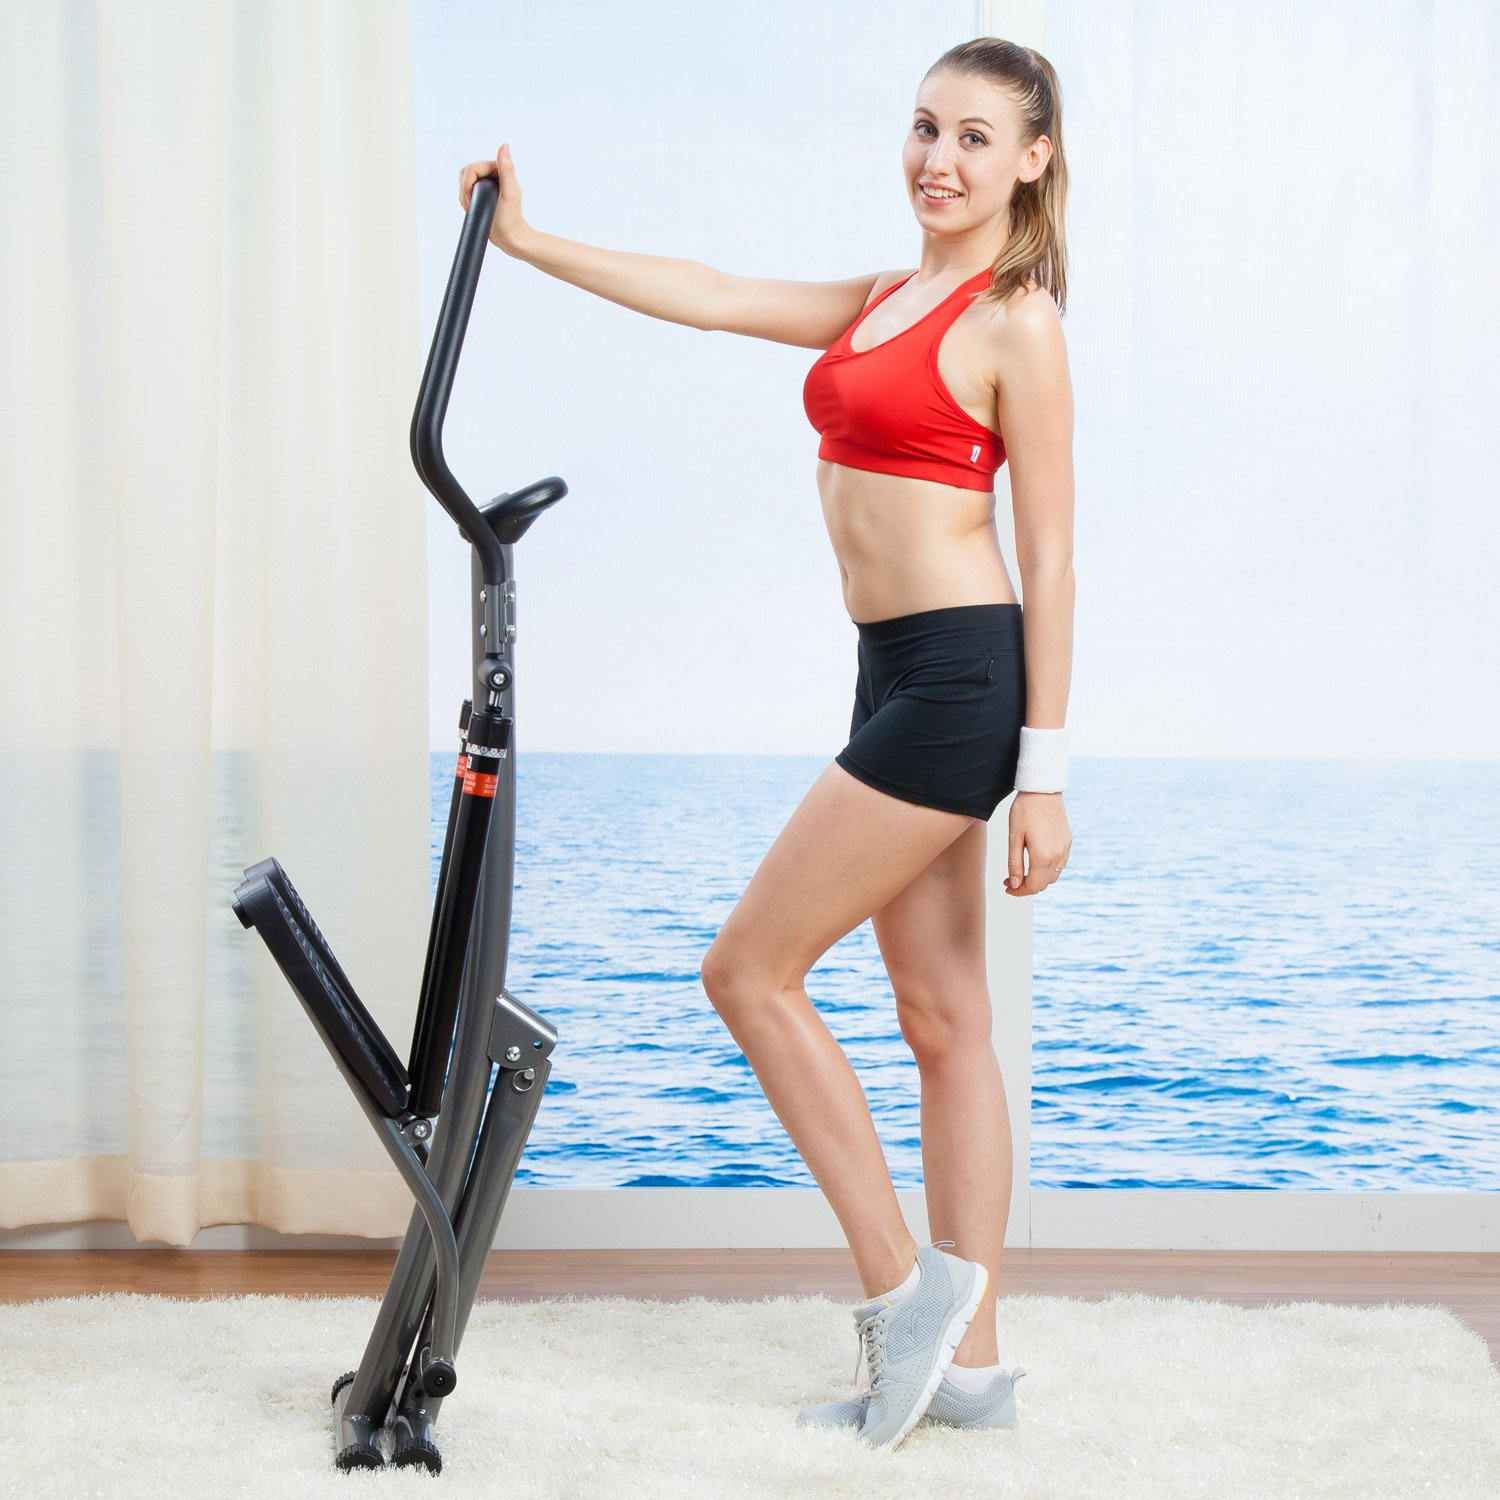 Sunny Health & Fitness Stair Stepper Exercise Equipment Step Machine for Exercise - SF-1115 by Sunny Health & Fitness (Image #3)